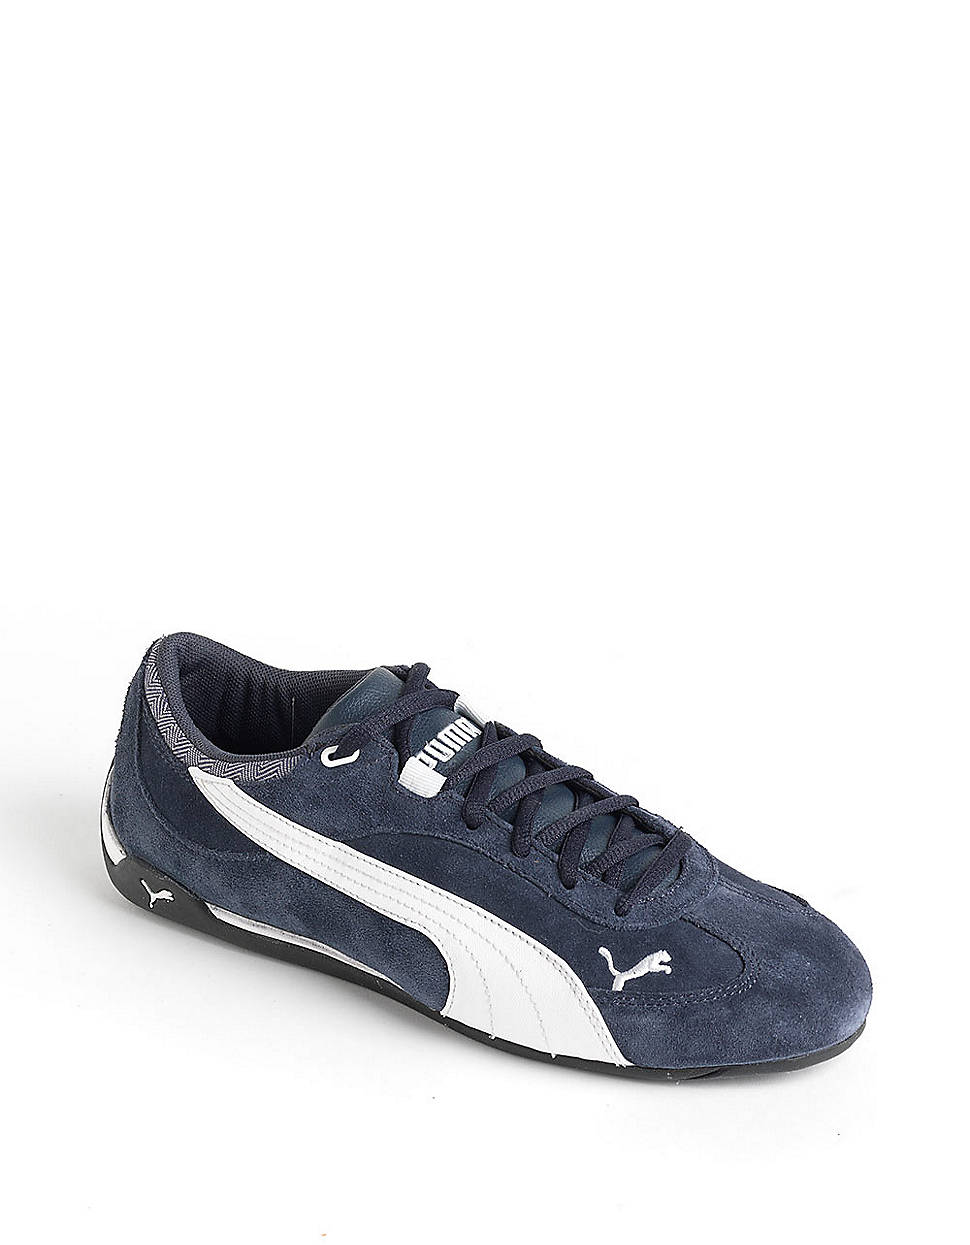 Puma Fast Cat Suede Sneakers In Blue For Men Lyst